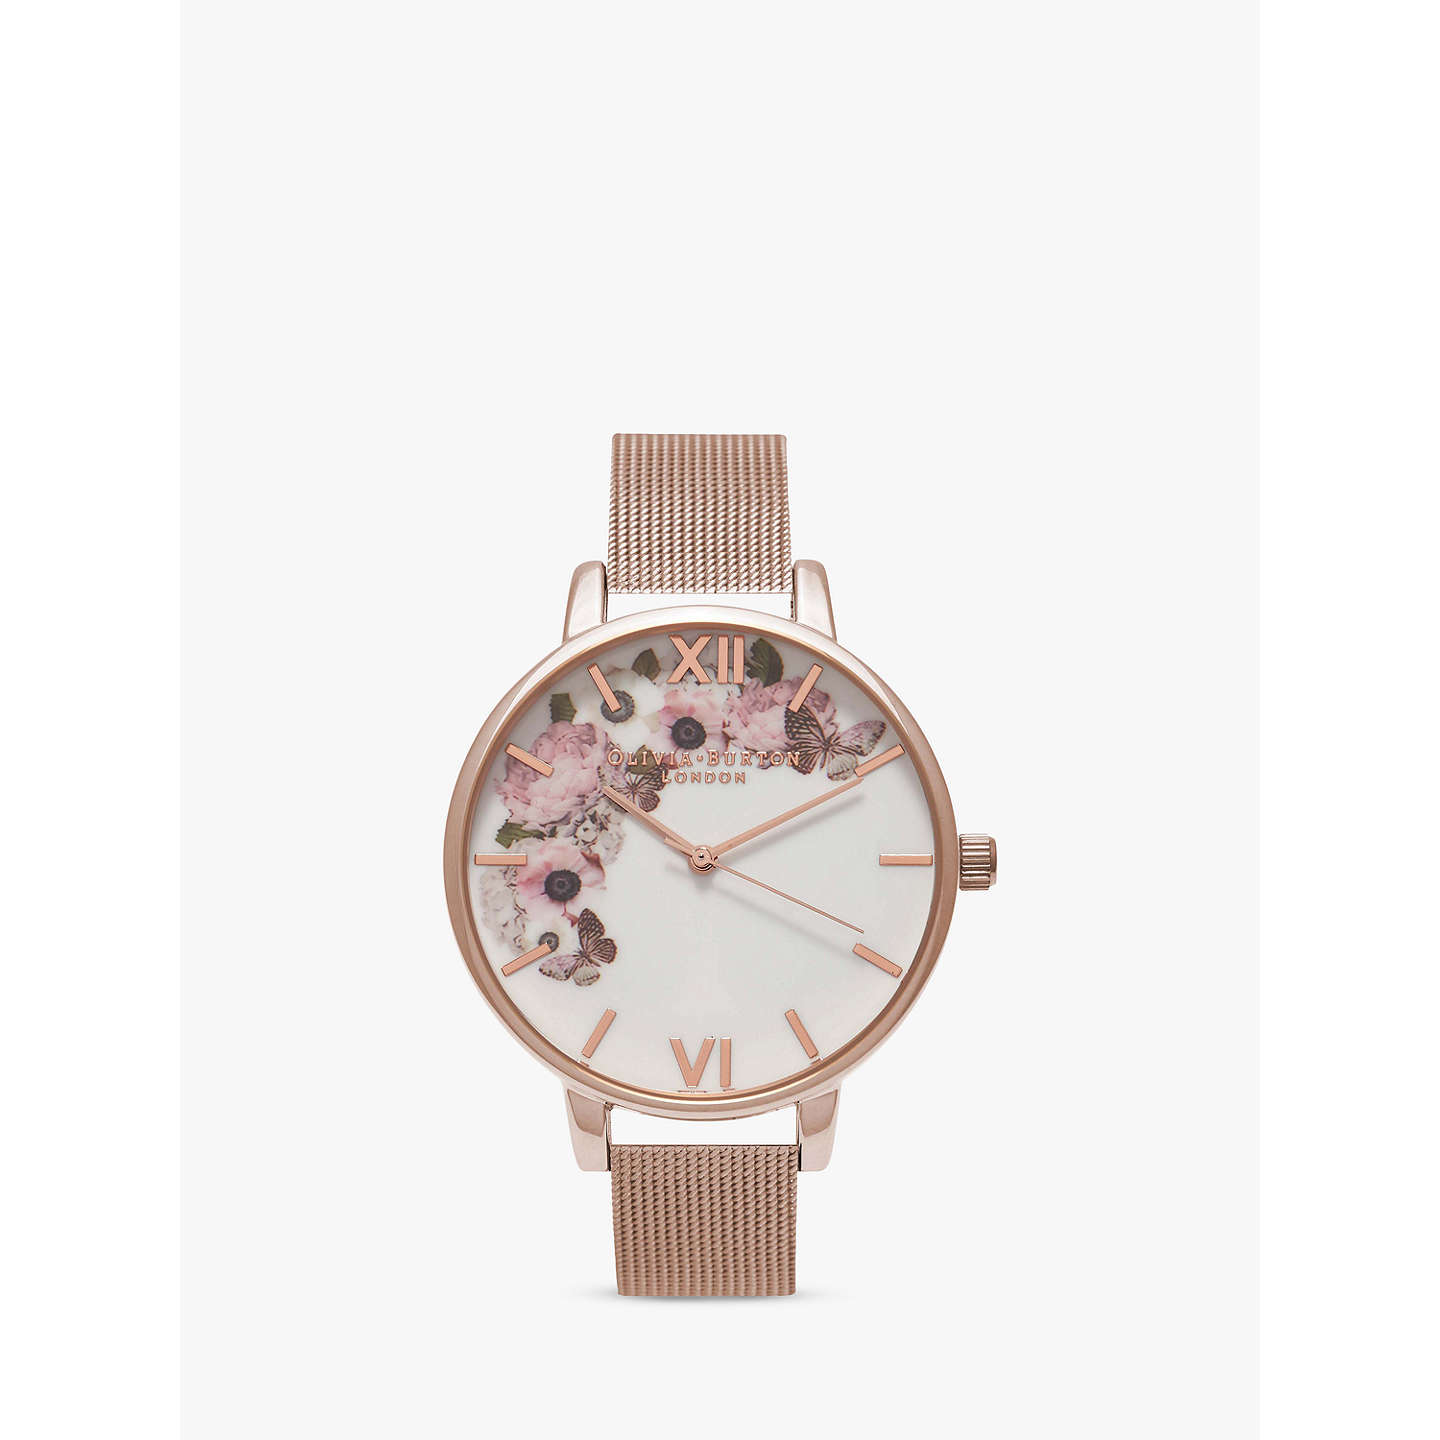 garden watches s main white rose winter women watch rsp pink womens online gold olivia mesh pdp buyolivia strap burton bracelet